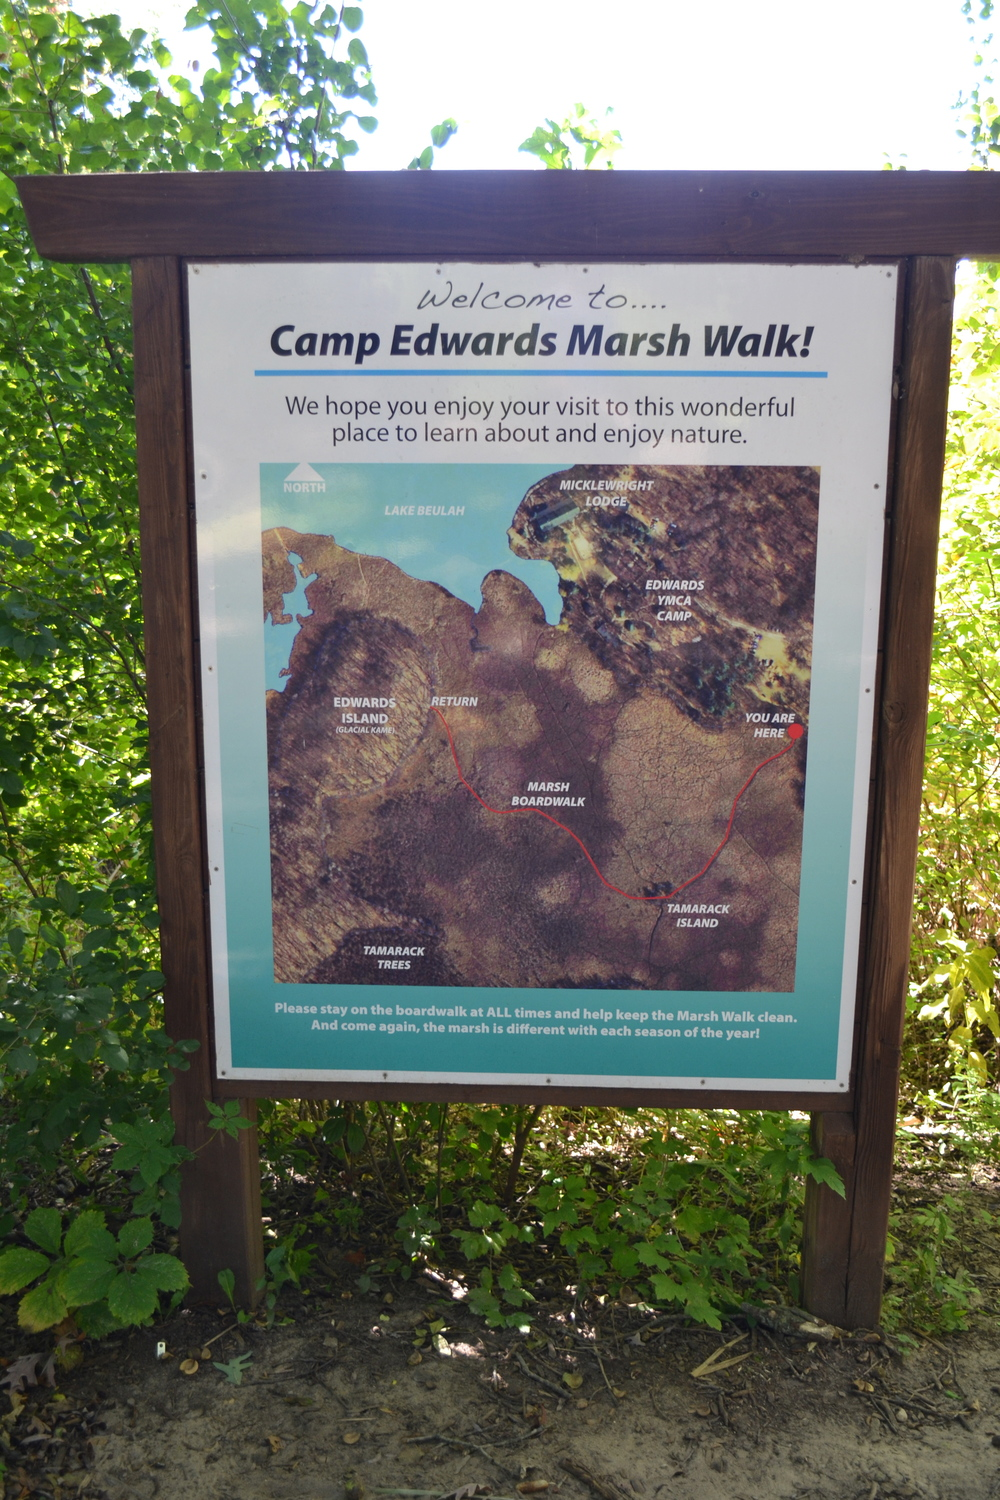 Camp Edwards